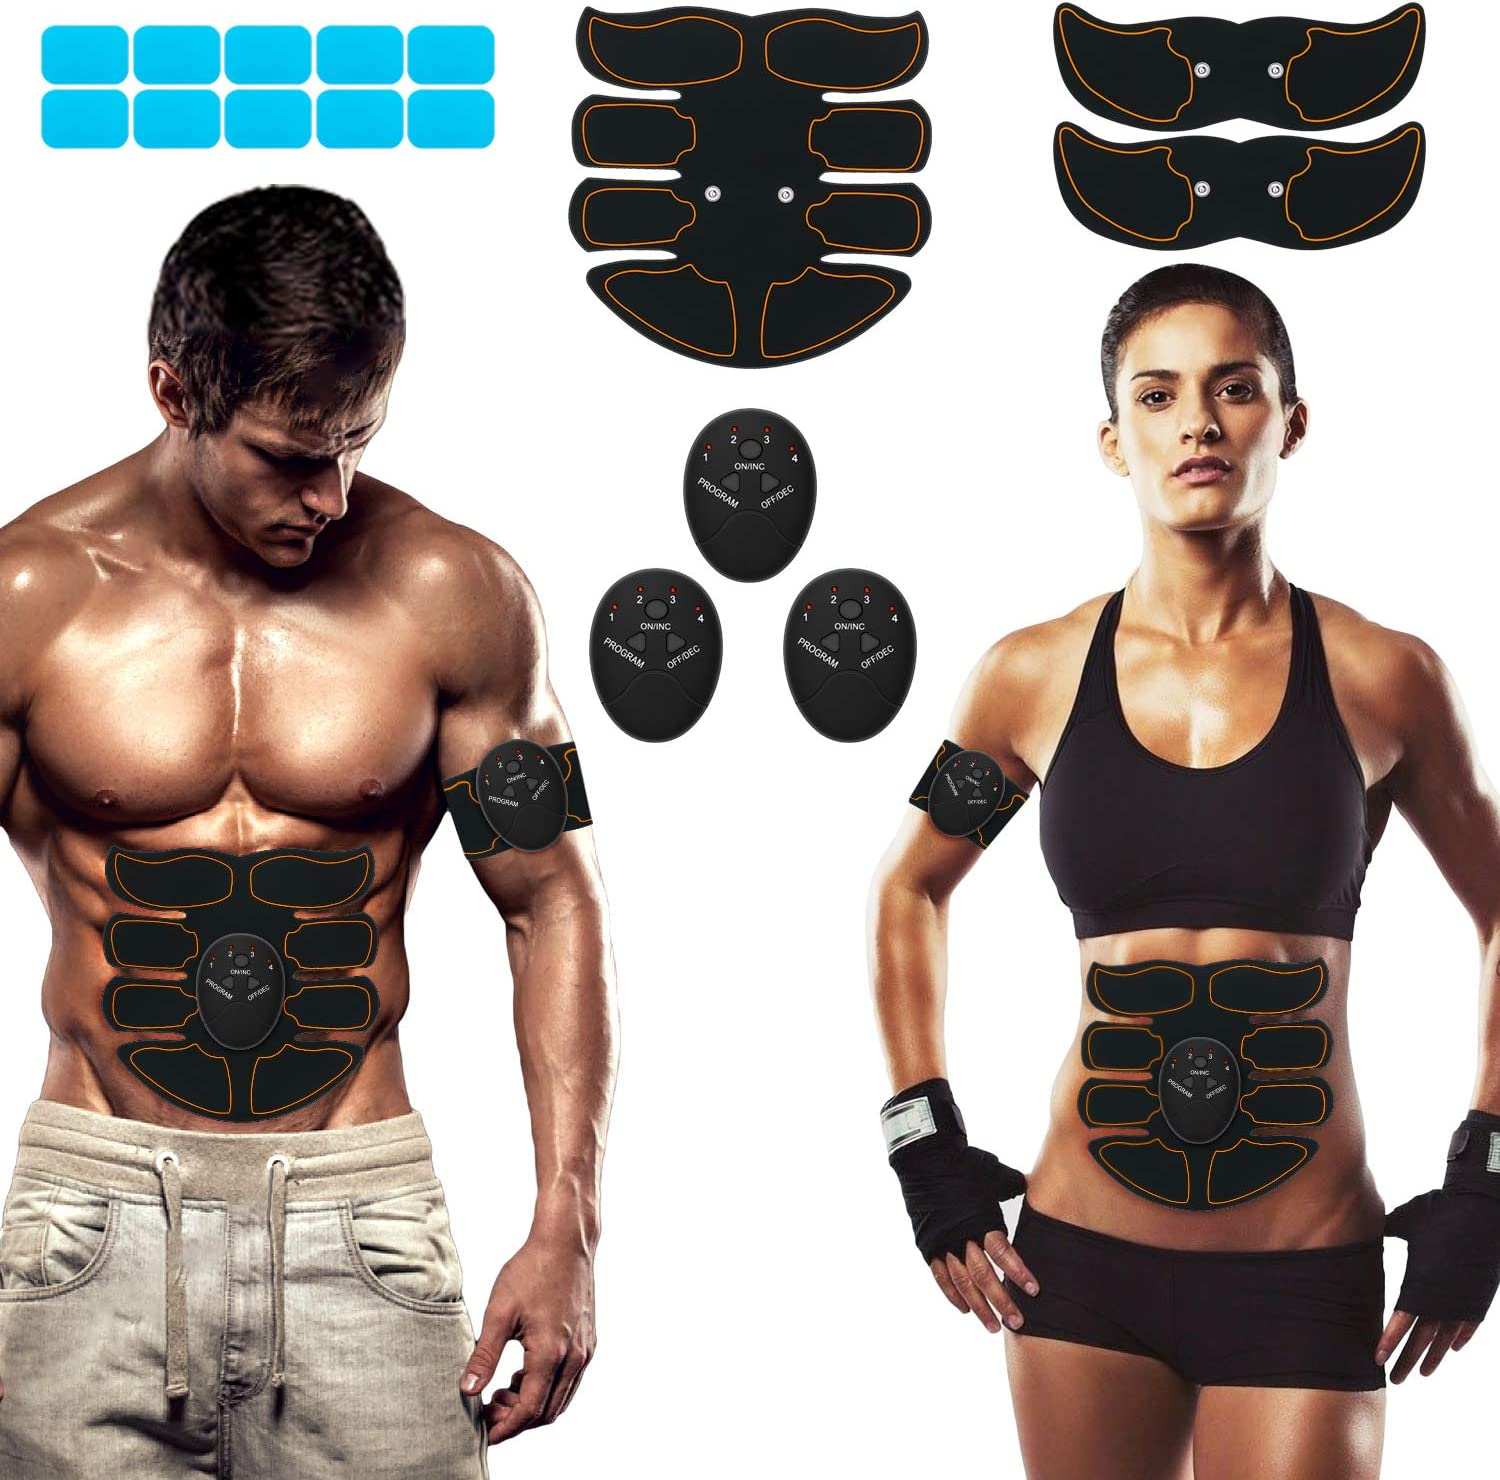 SPORTLIMIT Abs Stimulator, Wireless Portable Fitness Workout Equipment for Men Woman Abdomen/Arm/Leg Home Office Exercise,10pcs Free Gel Pads